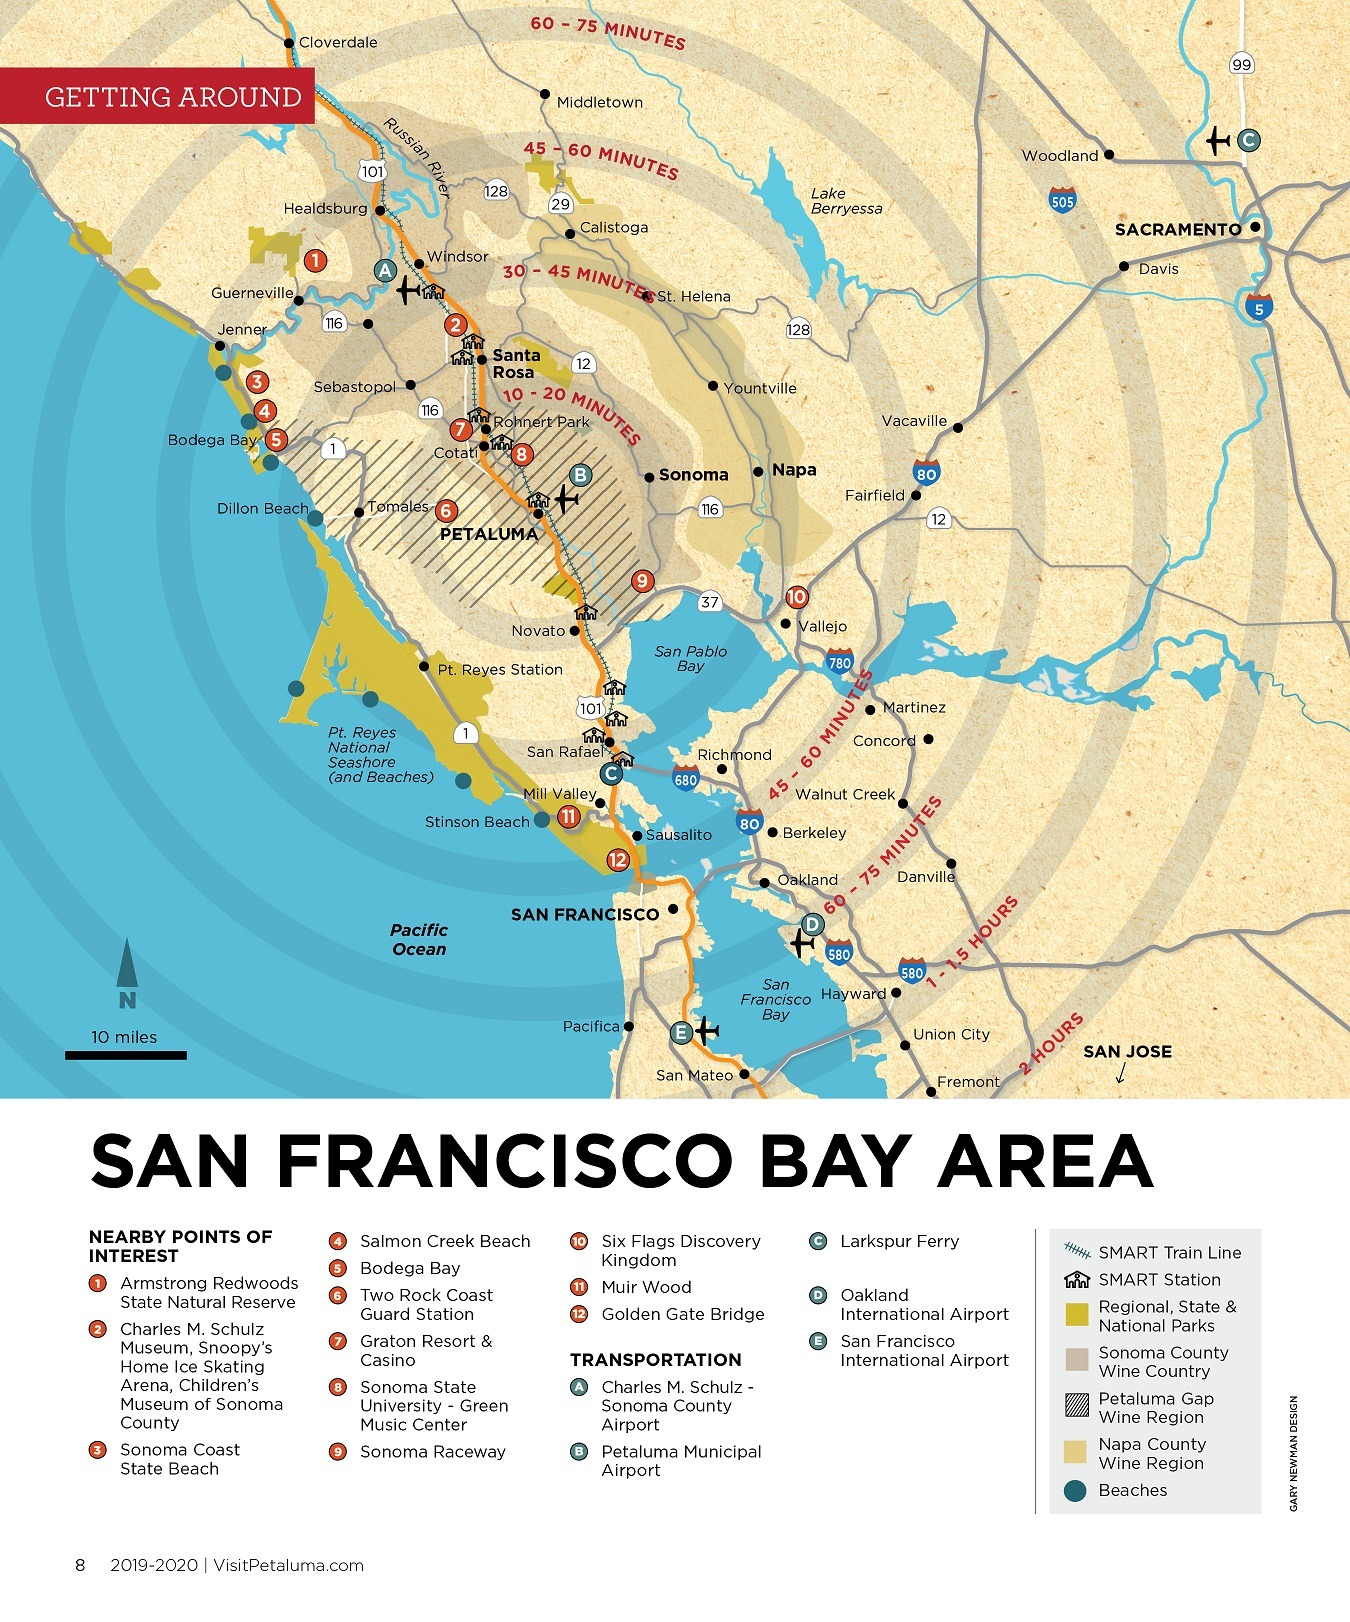 The Best Bay Area Adventures Begin In Petaluma Visit Petaluma California This is the best video to get you familiar with the bay area map, the north bay cities, and all the affordable places to live near san francisco!#bayarea. bay area adventures begin in petaluma